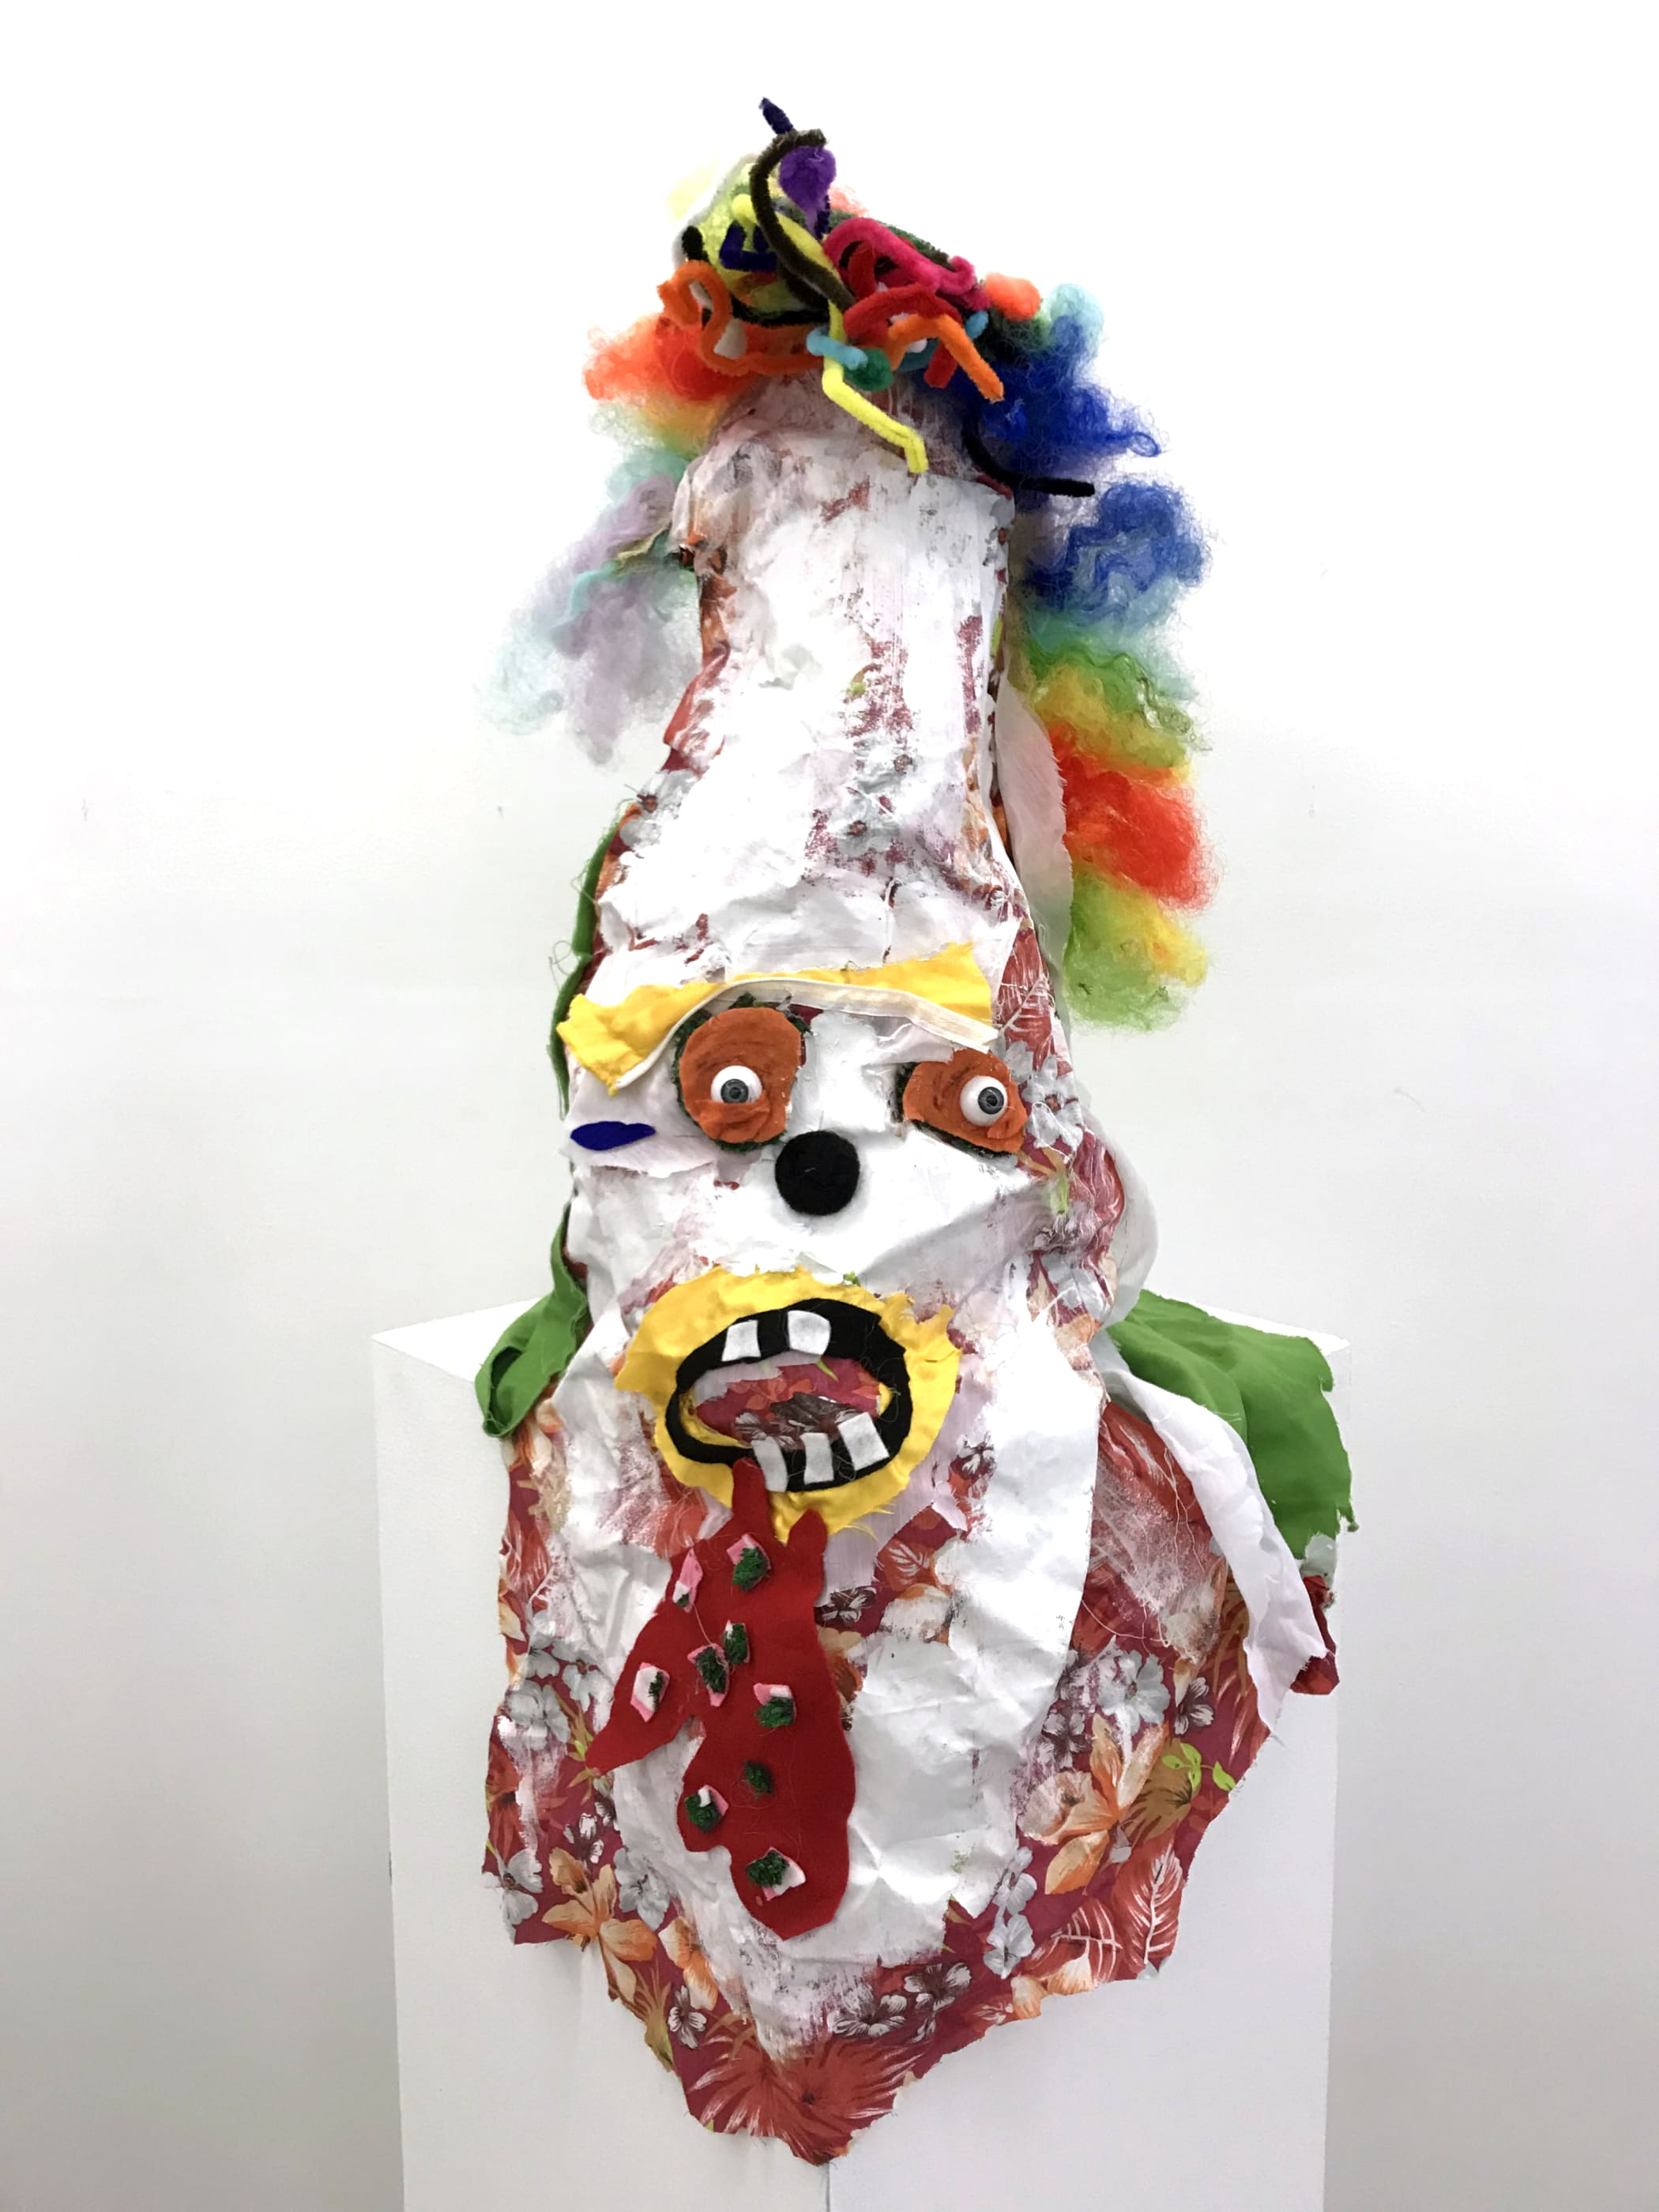 Brian A. Whiteley, Clown Mask 2, 2017